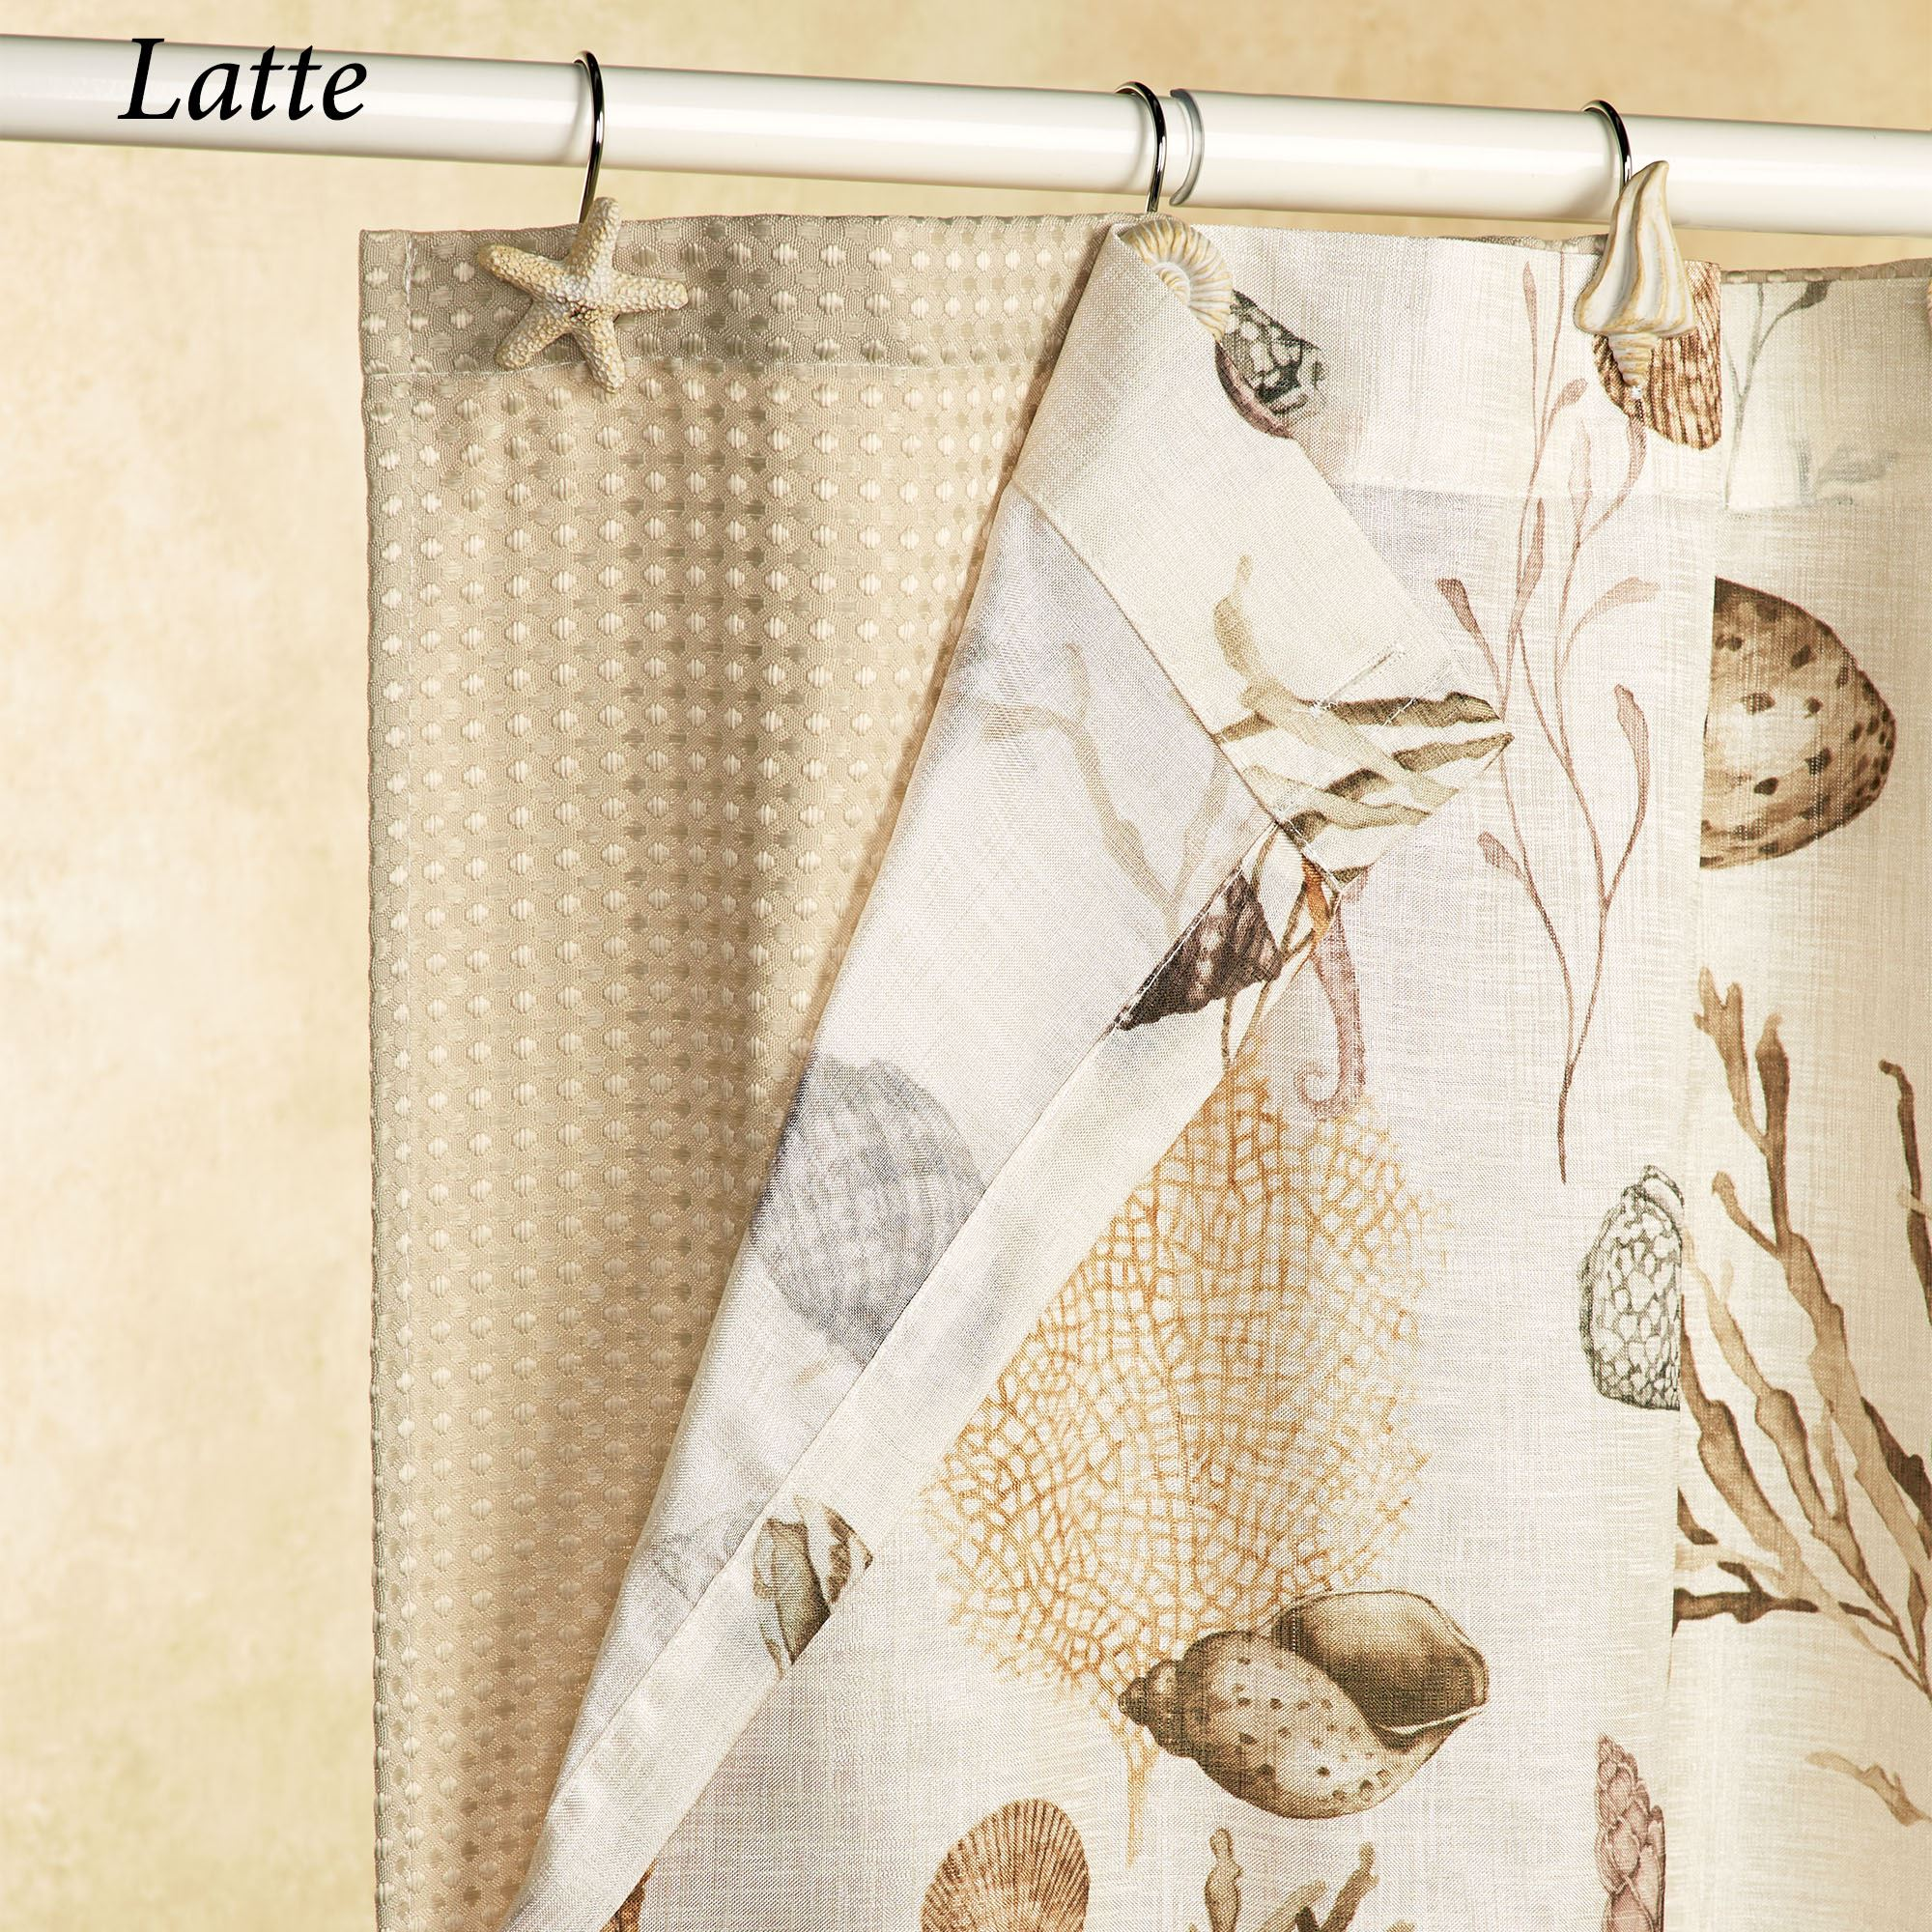 lurex pedrick run waffle new bed curtains shower latitude white wayfair bath pdx curtain